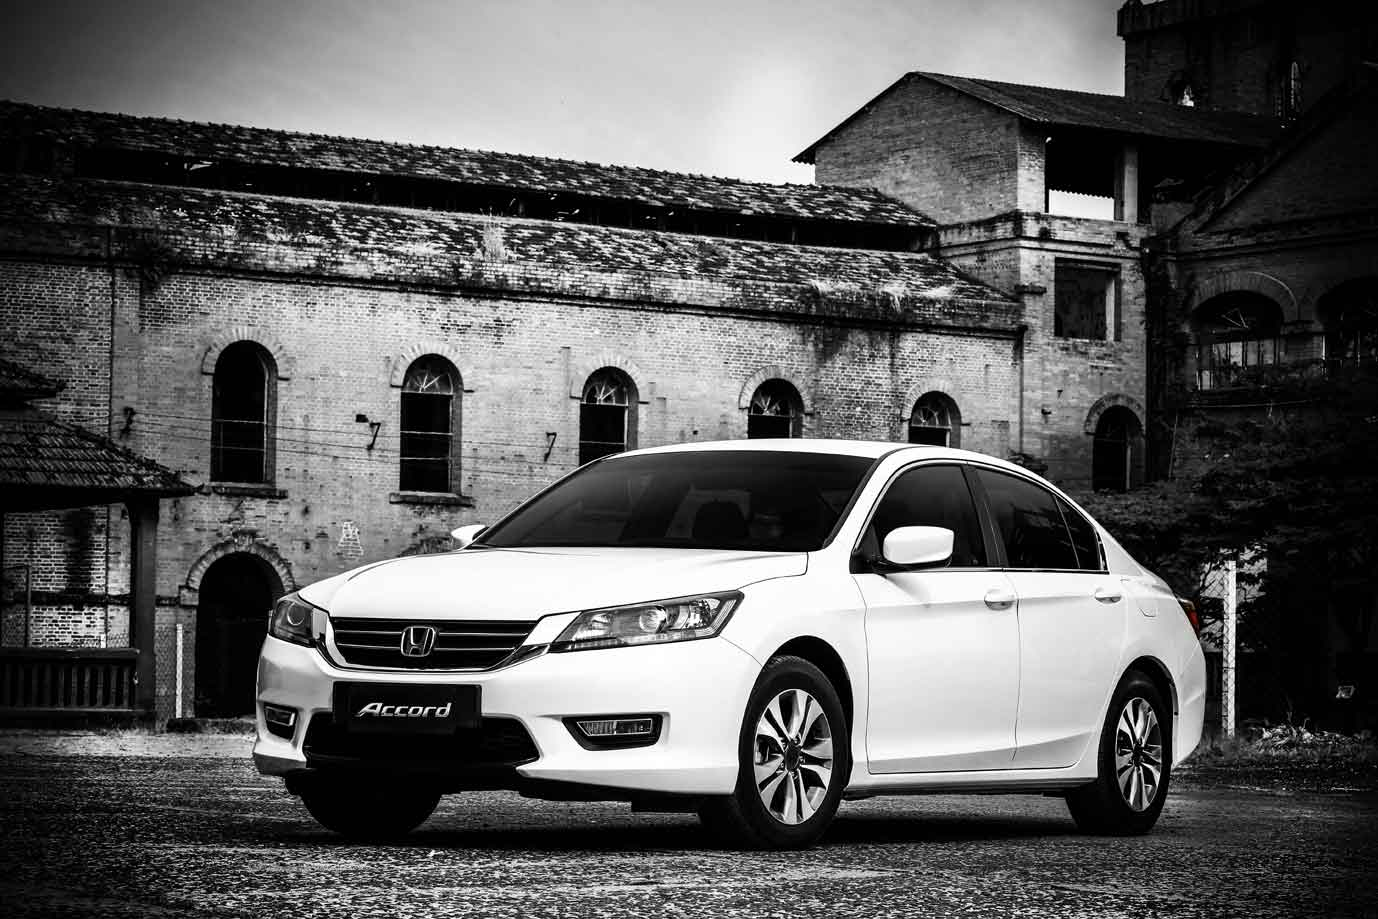 carro on Honda Accord 2014